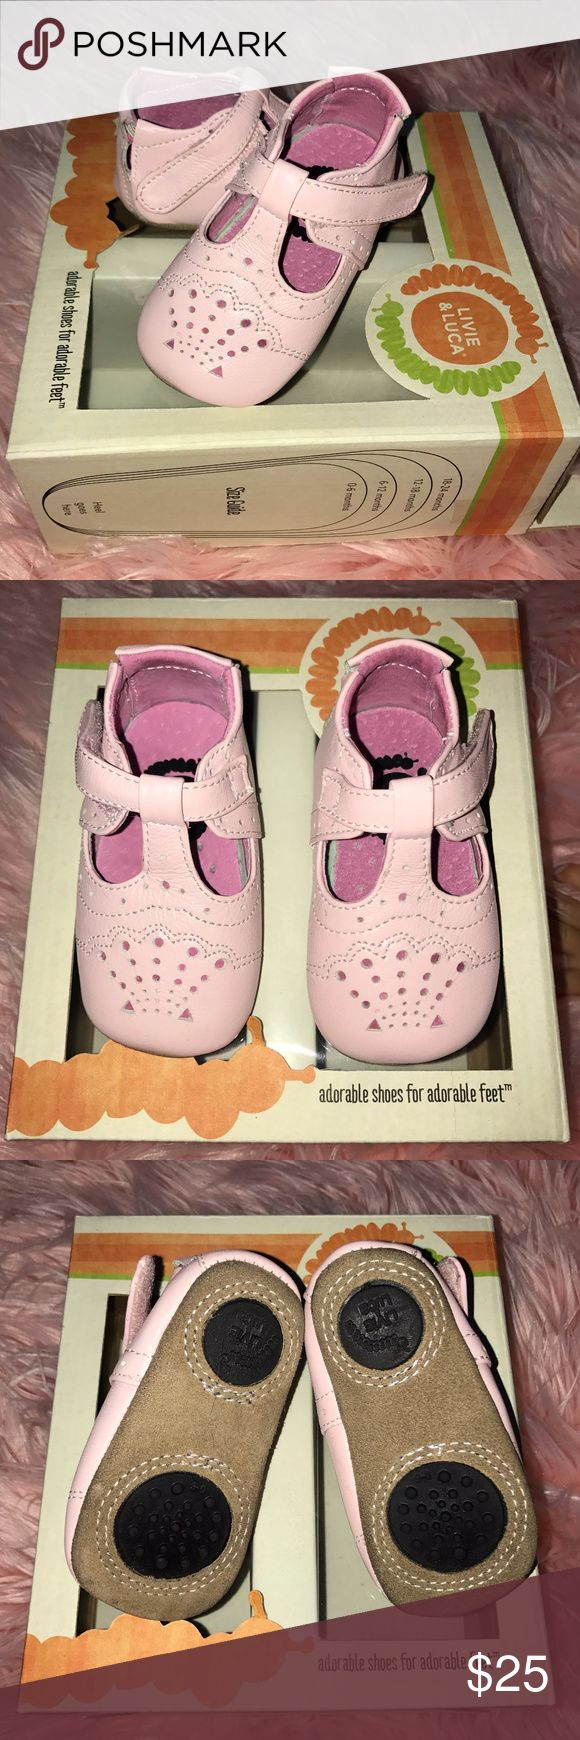 Livie & Luca Baby Girl Shoes Livie & Luca Infant Girl Shoes- Light Pink- Size 0-6 months -LIKE NEW in original box -Size 0-6 months -Color Light Pink -Style Cora (Classic Mary Janes) -Smooth Genuine Leather Livie & Luca Shoes Baby & Walker